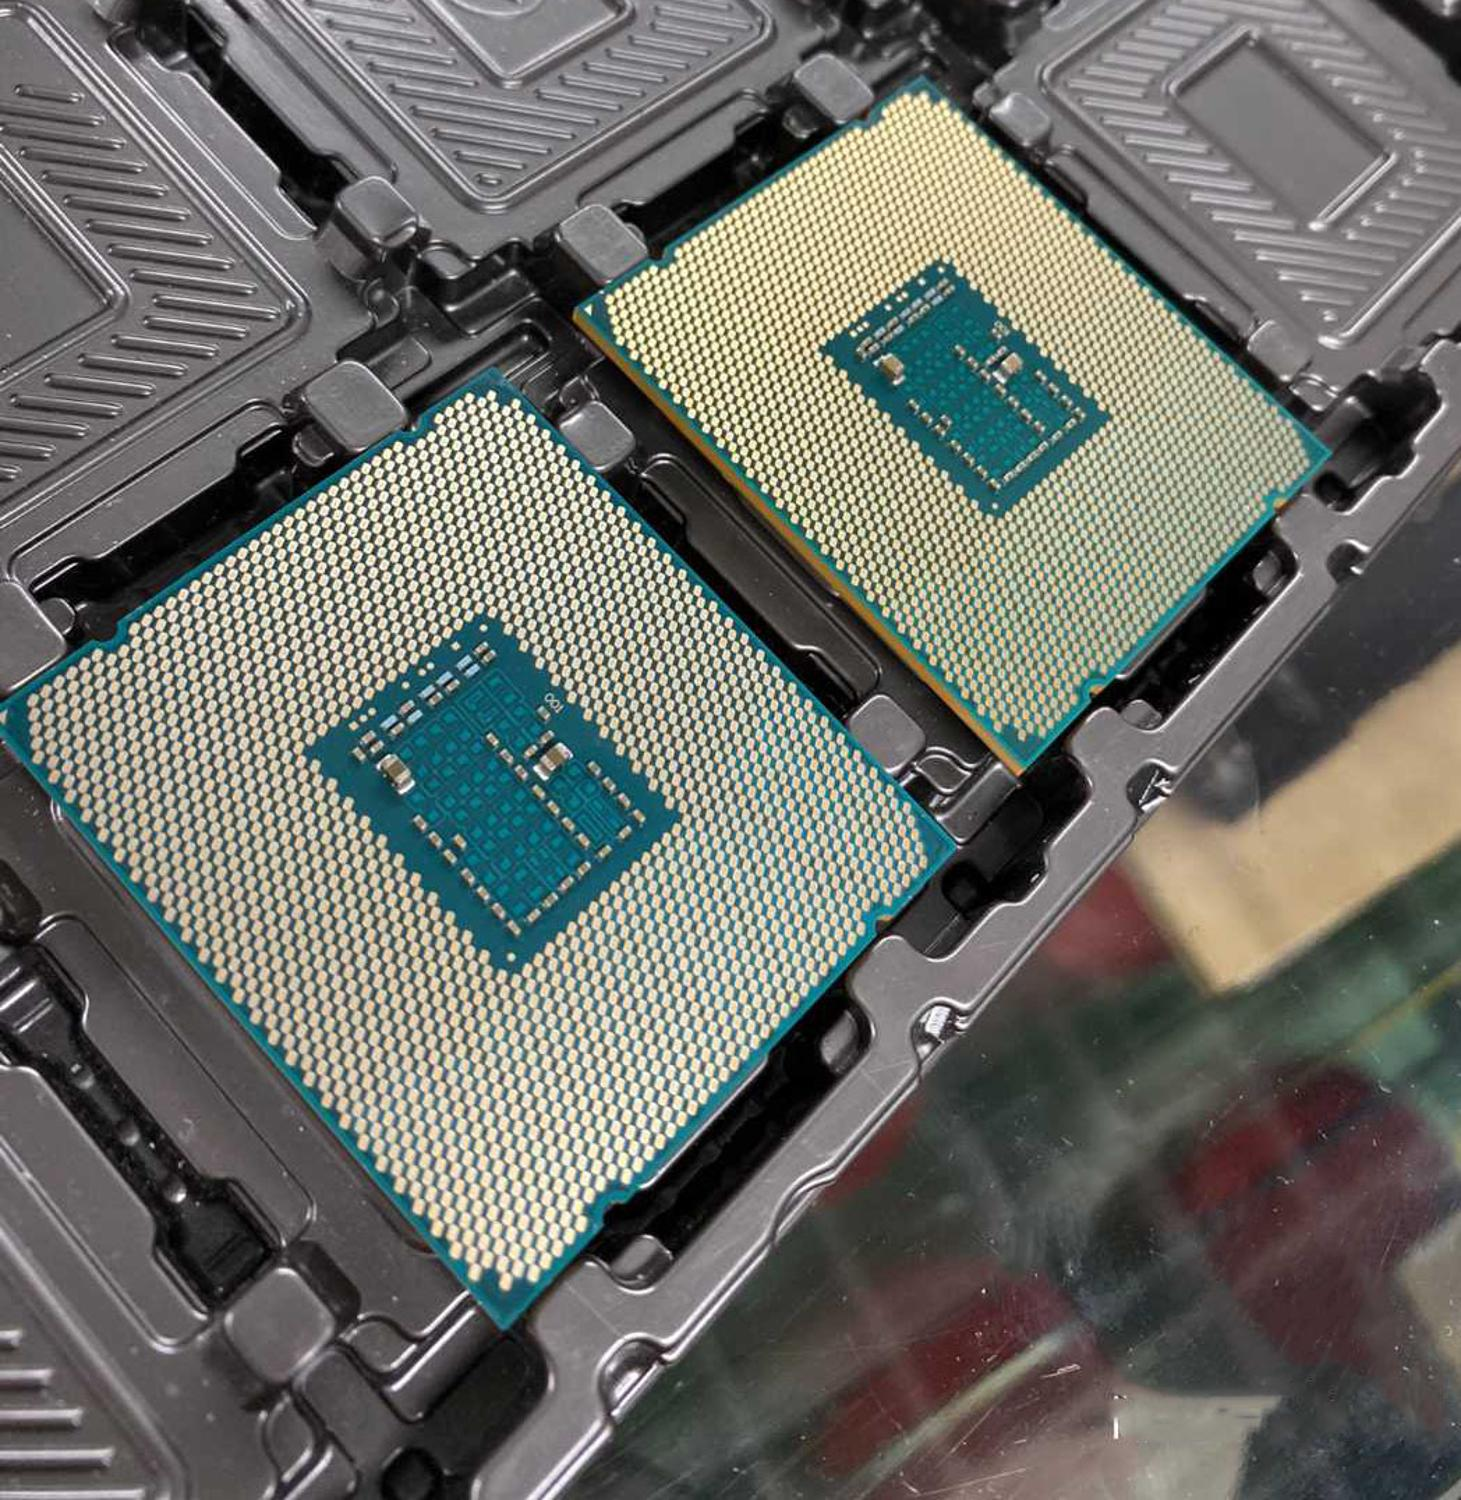 INTEL XEON E5-2650LV3  E5 2650L V3 E5 2650LV3 E5-2650L V3 1.8GHz 12-Core LGA2011-3 For X99 motherboard 3